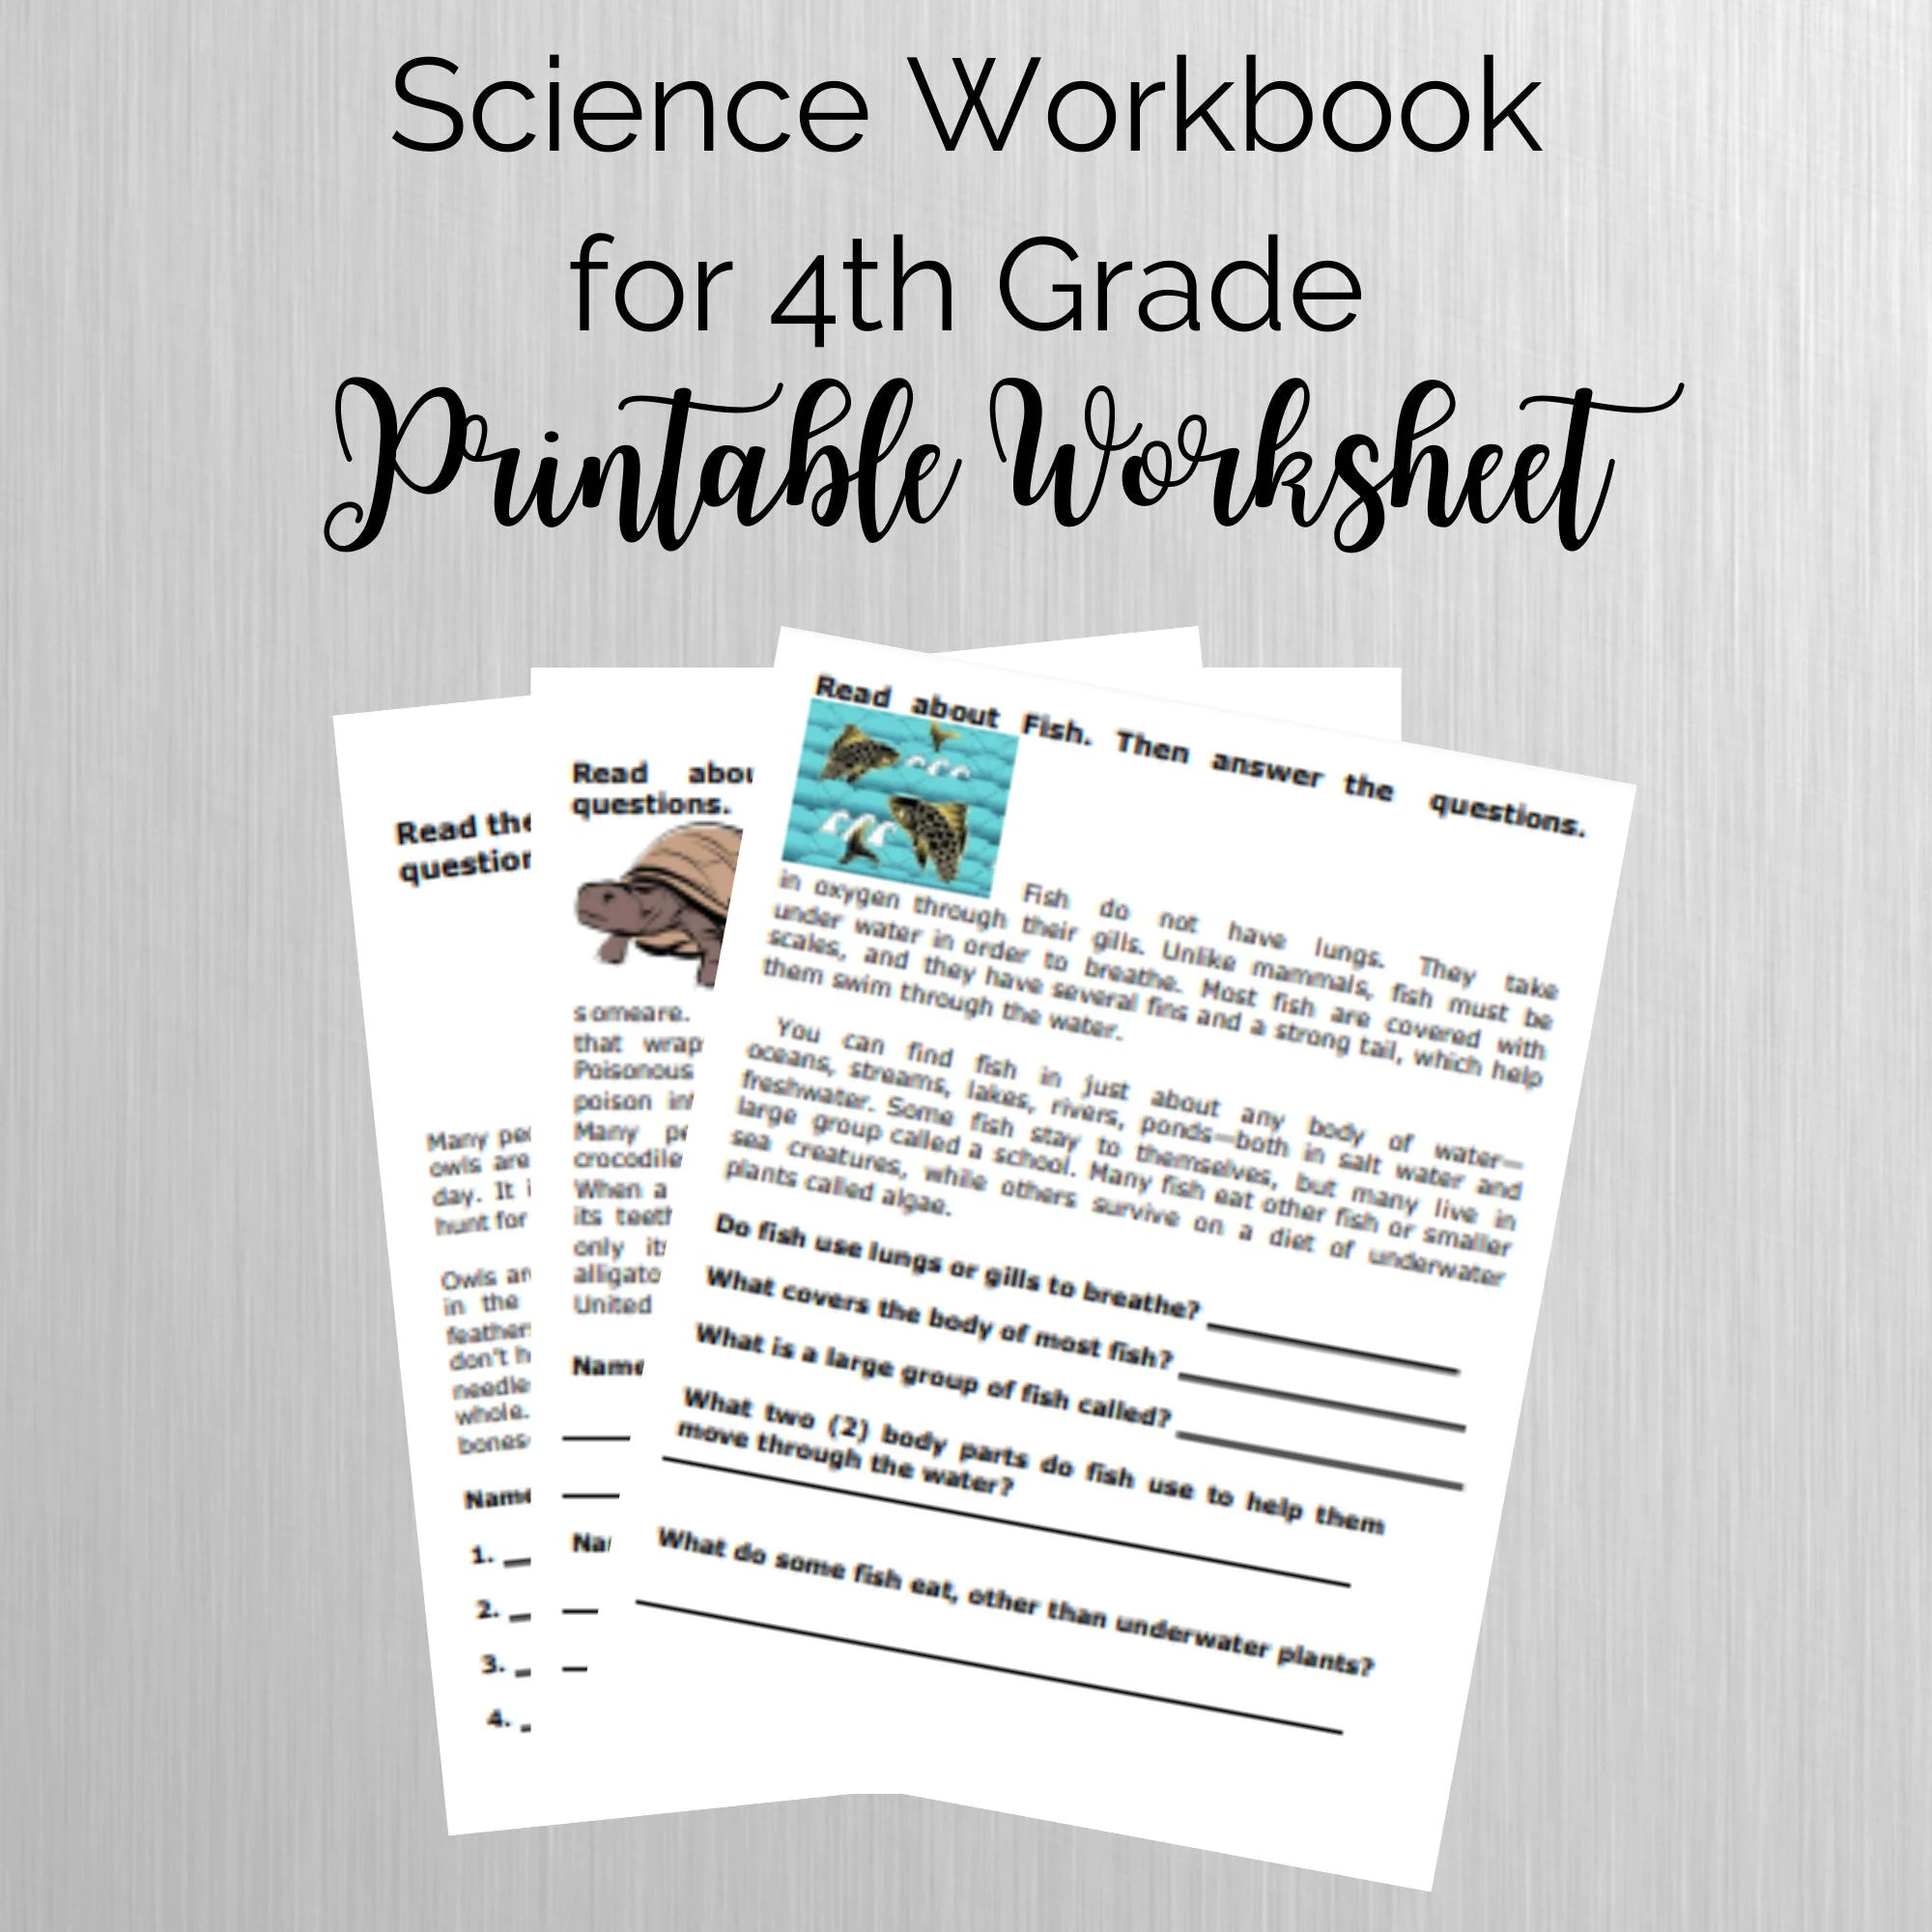 Science Workbook For 4th Grade Printable Exercise